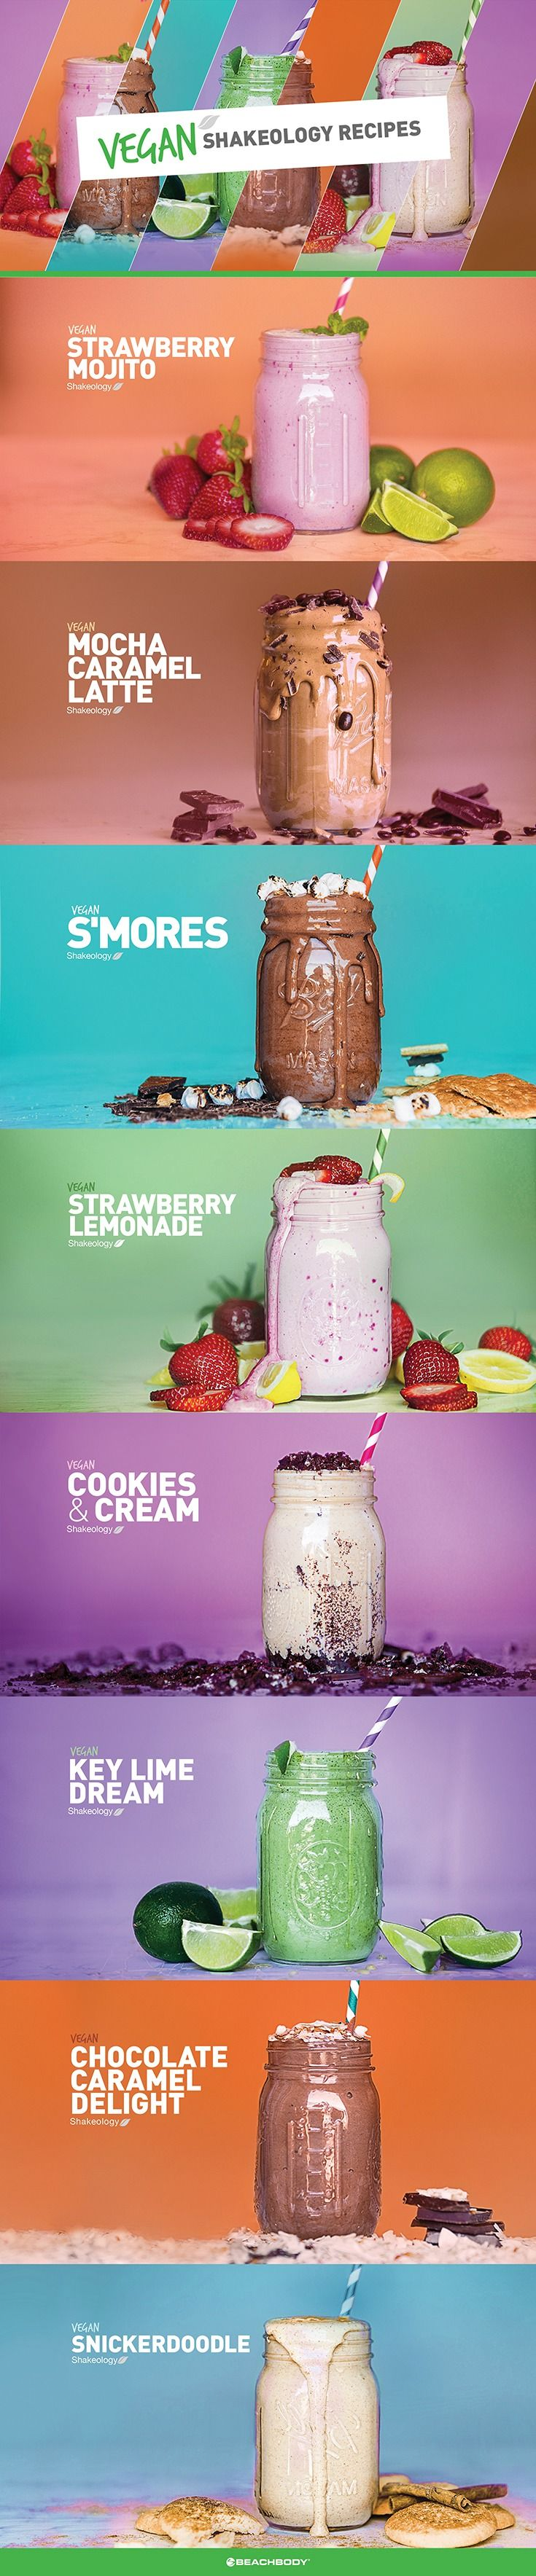 Vanilla Vegan Shakeology and Café Latte Vegan Shakeology are now available! Here's 8 of your favorite Shakeology recipes now dairy-free! // healthy recipes // shakeology recipe // smoothies // vegan recipe // dairy-free // drinks // beverages // snacks // desserts // high protein // Beachbody // BeachbodyBlog.com